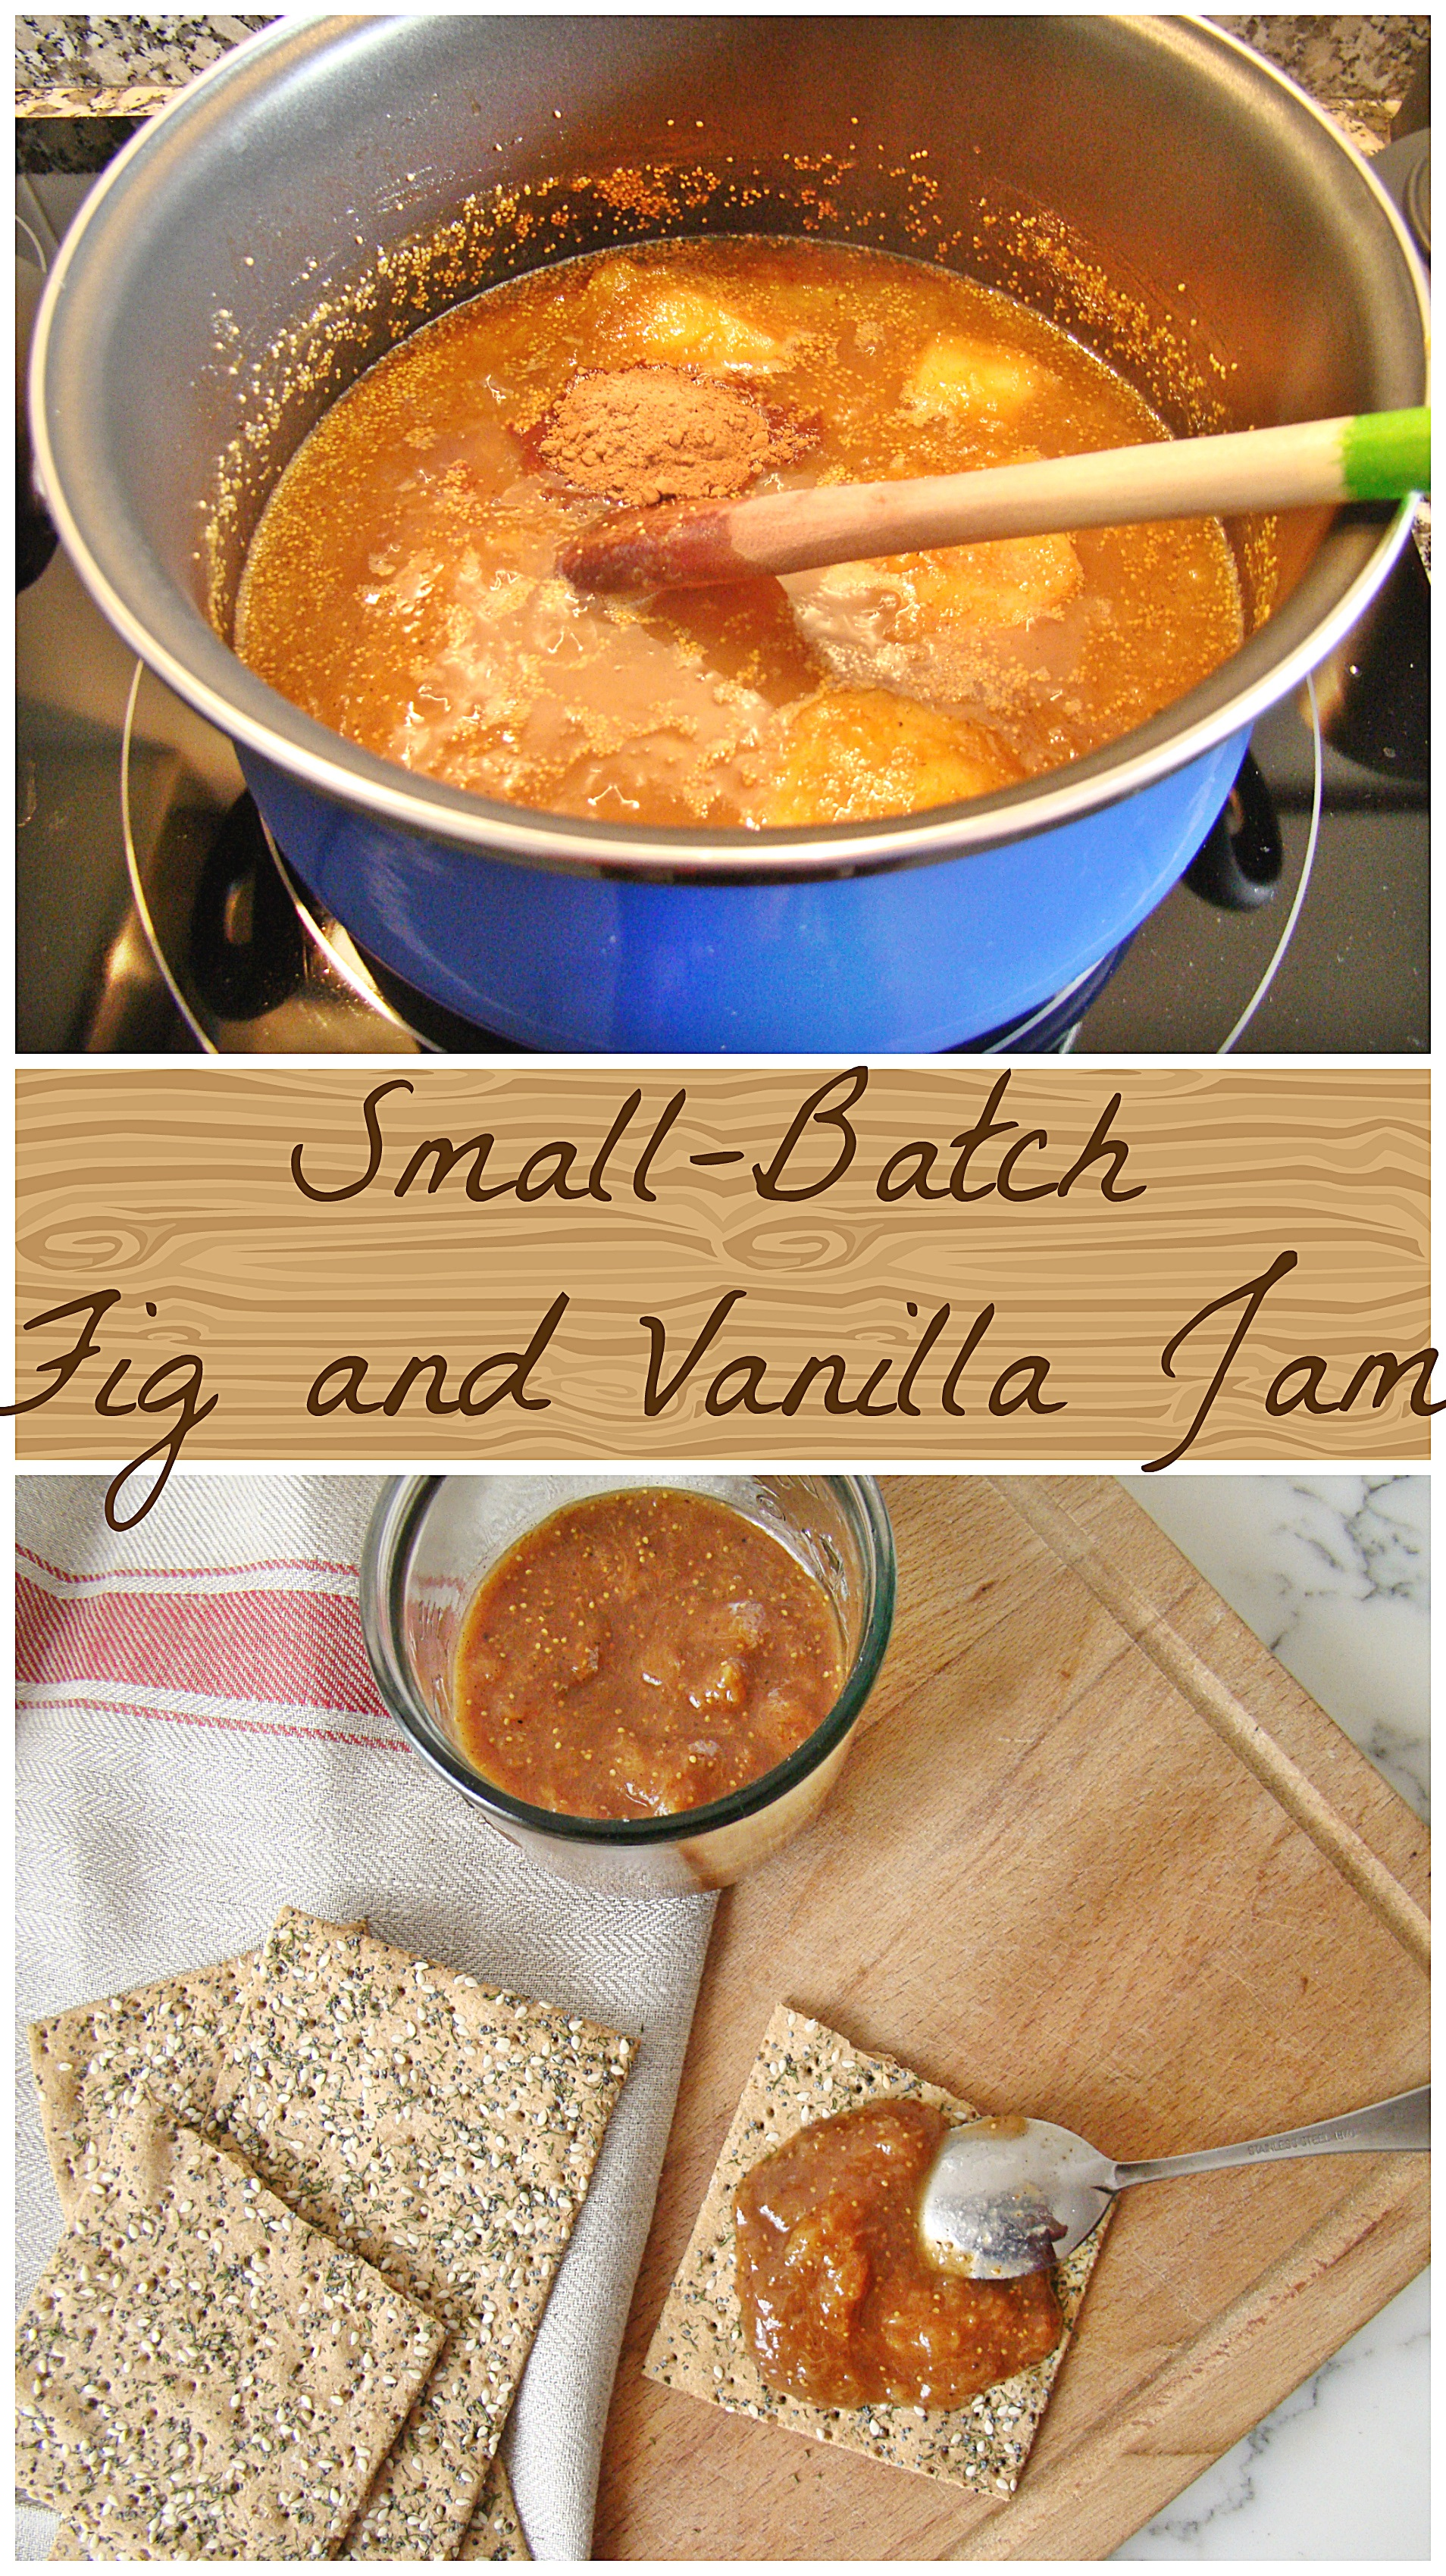 small-batch-fig-and-vanilla-jam